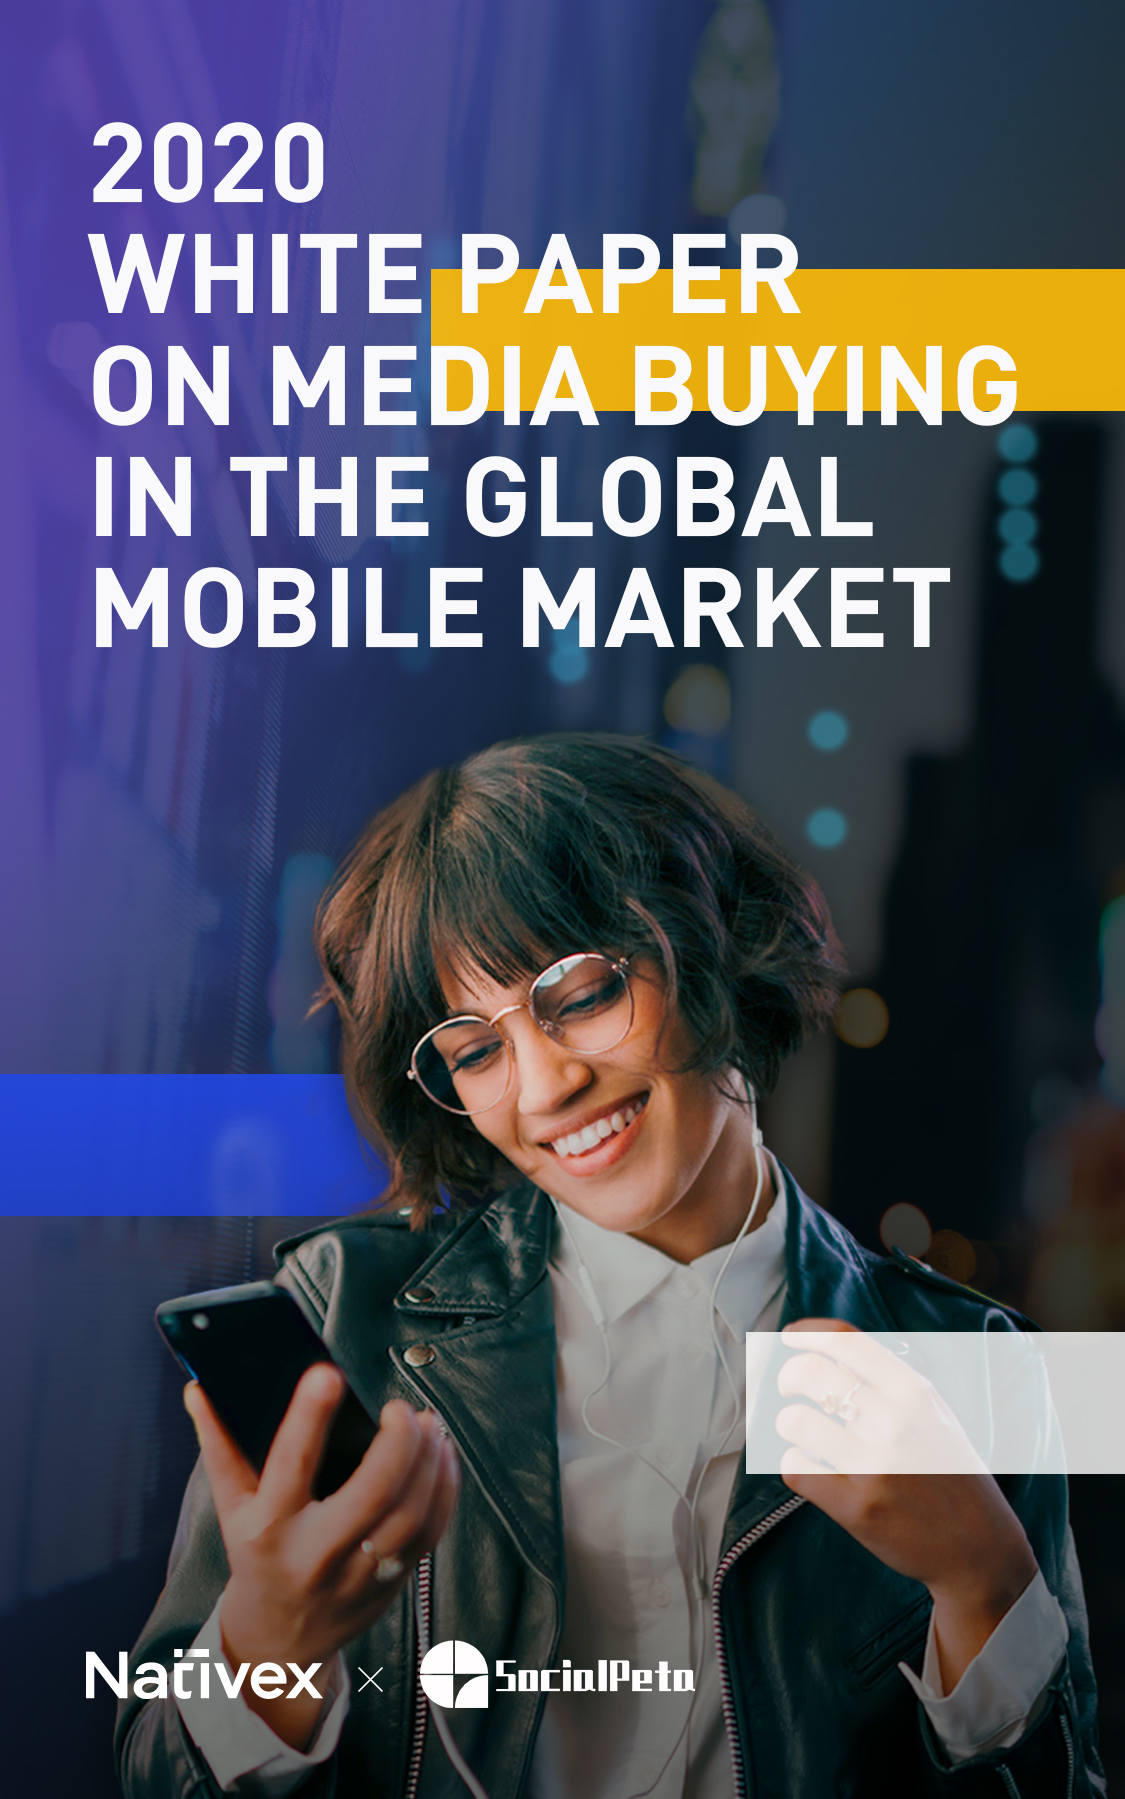 2020 White Paper on Media Buying in the Global Mobile Market